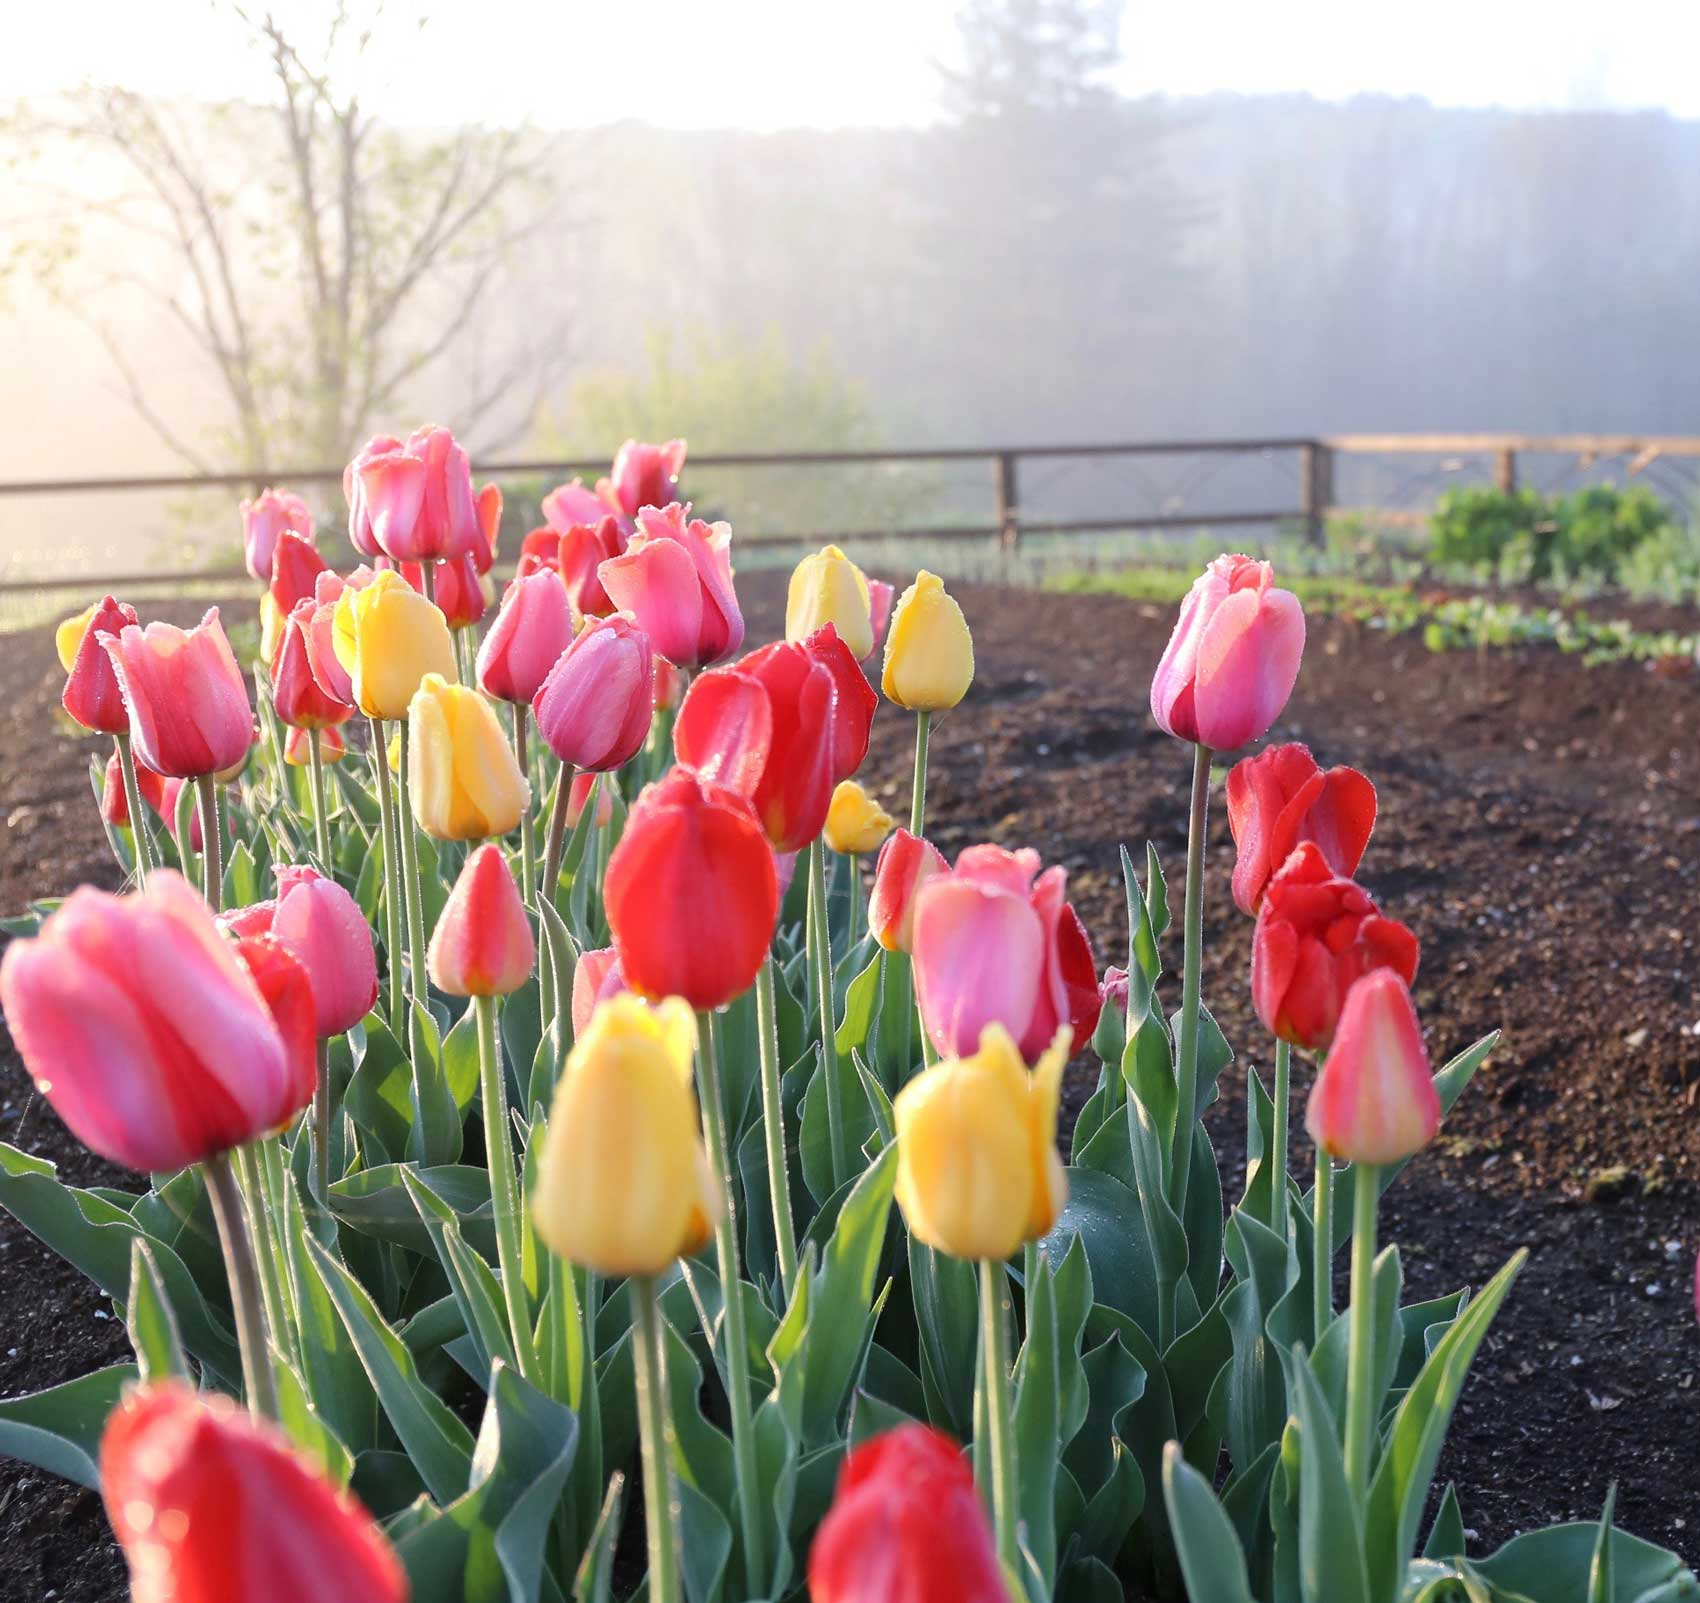 tulips-in-vegetable-garden.jpg